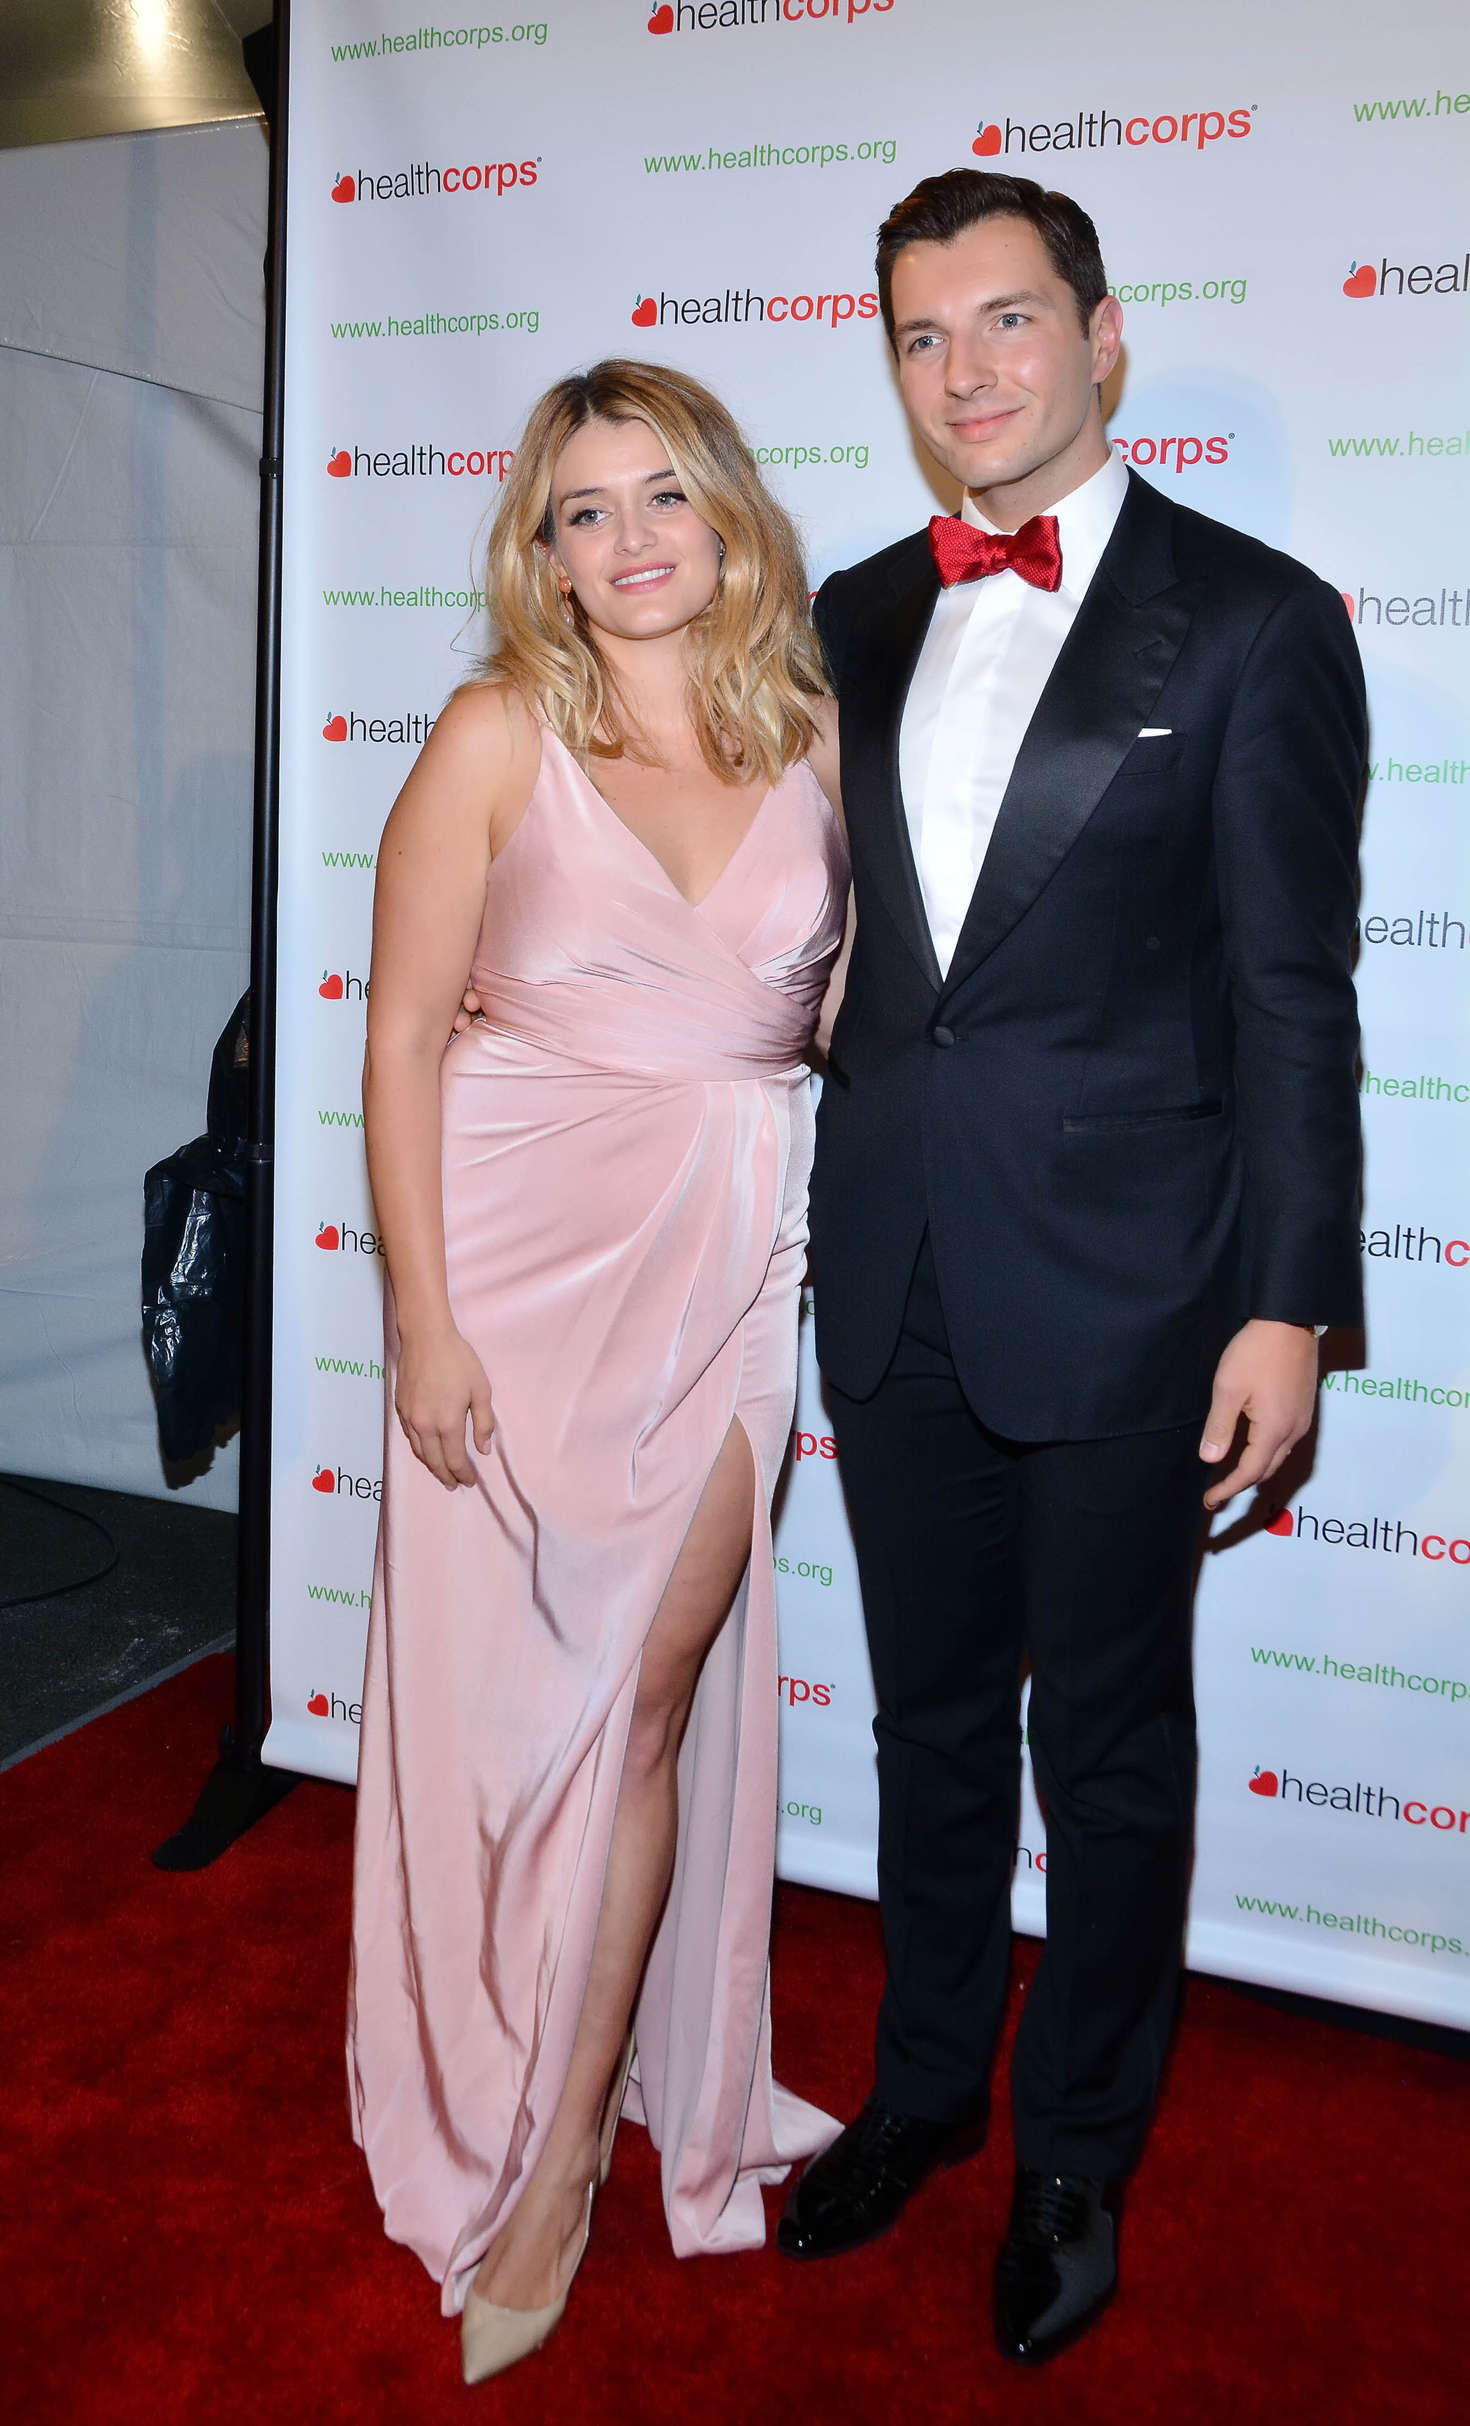 Daphne Oz - 10th Annual HealthCorps Gala held at Pier 60